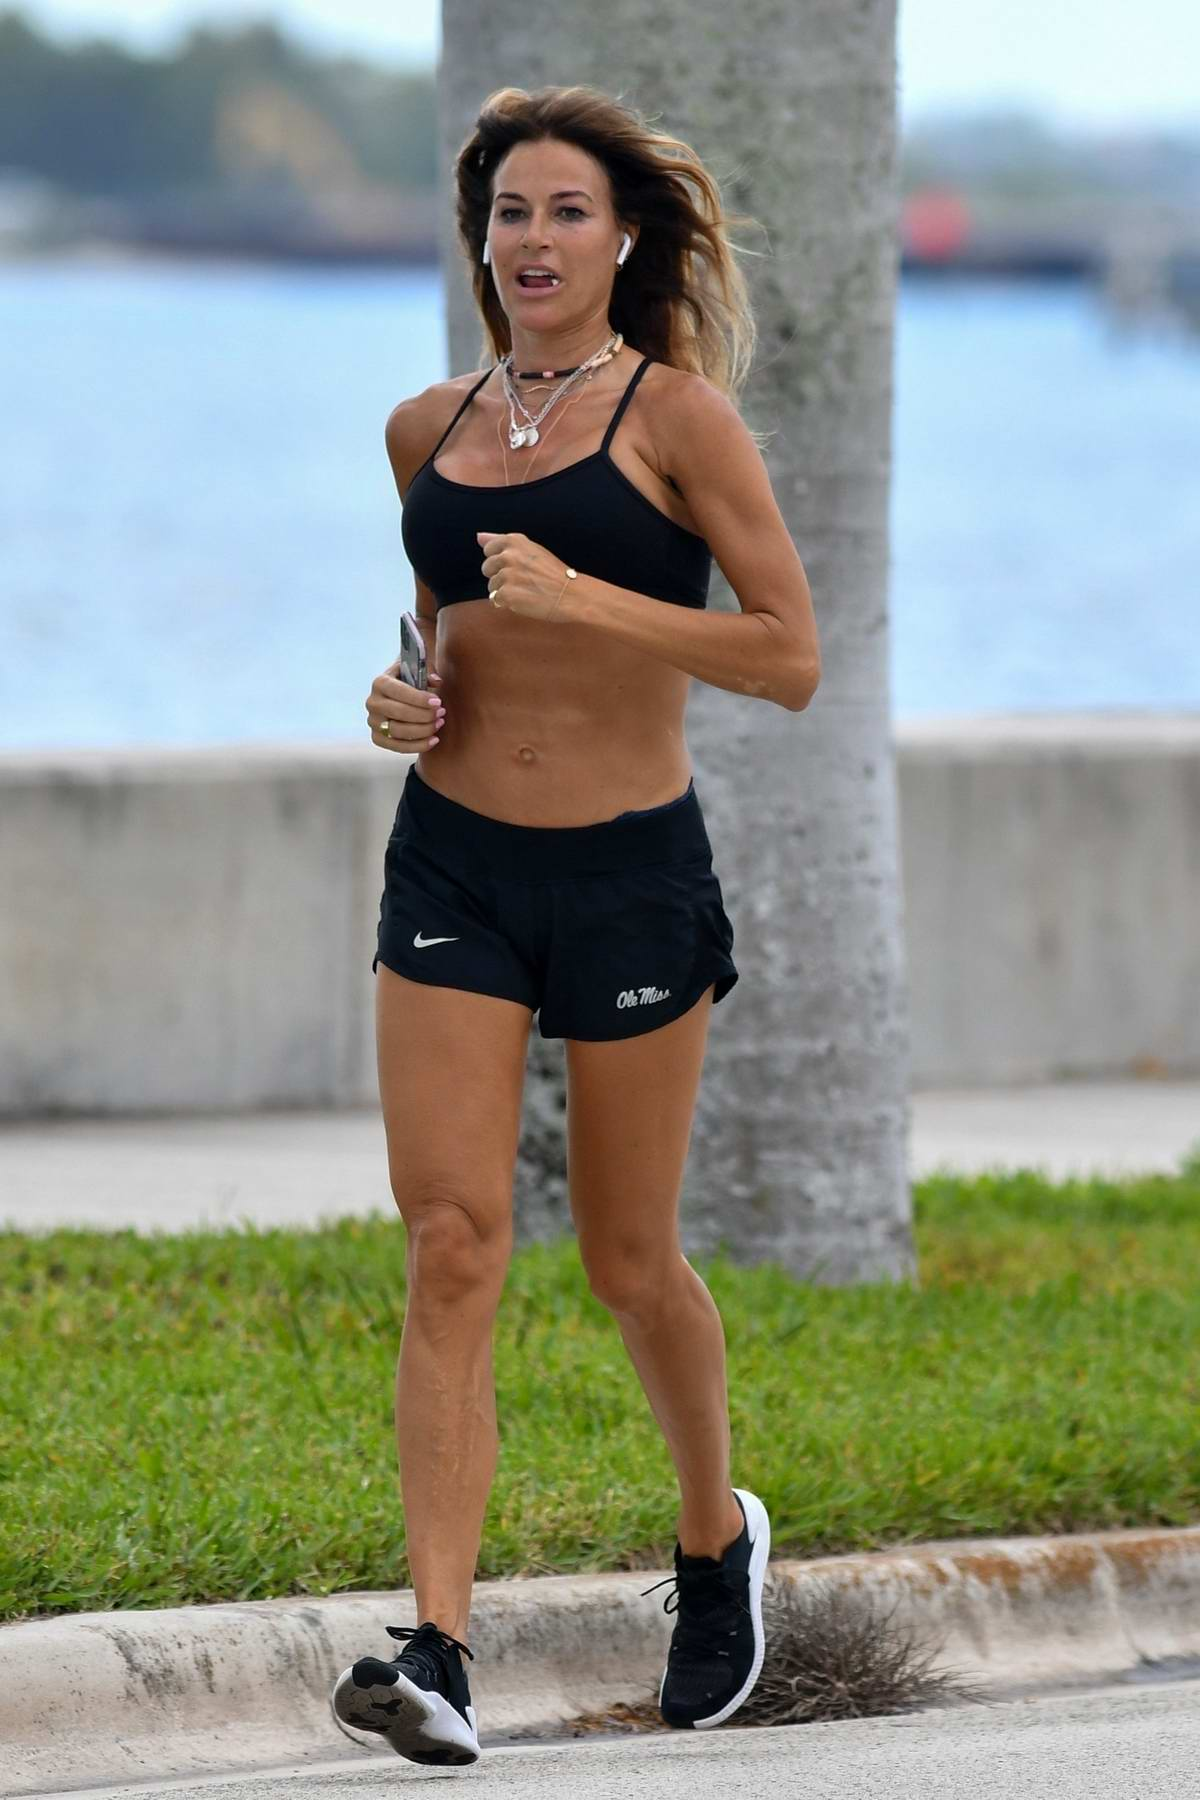 Kelly Bensimon shows off her fit body in a crop top and shorts while out for a run in Palm Beach, Florida